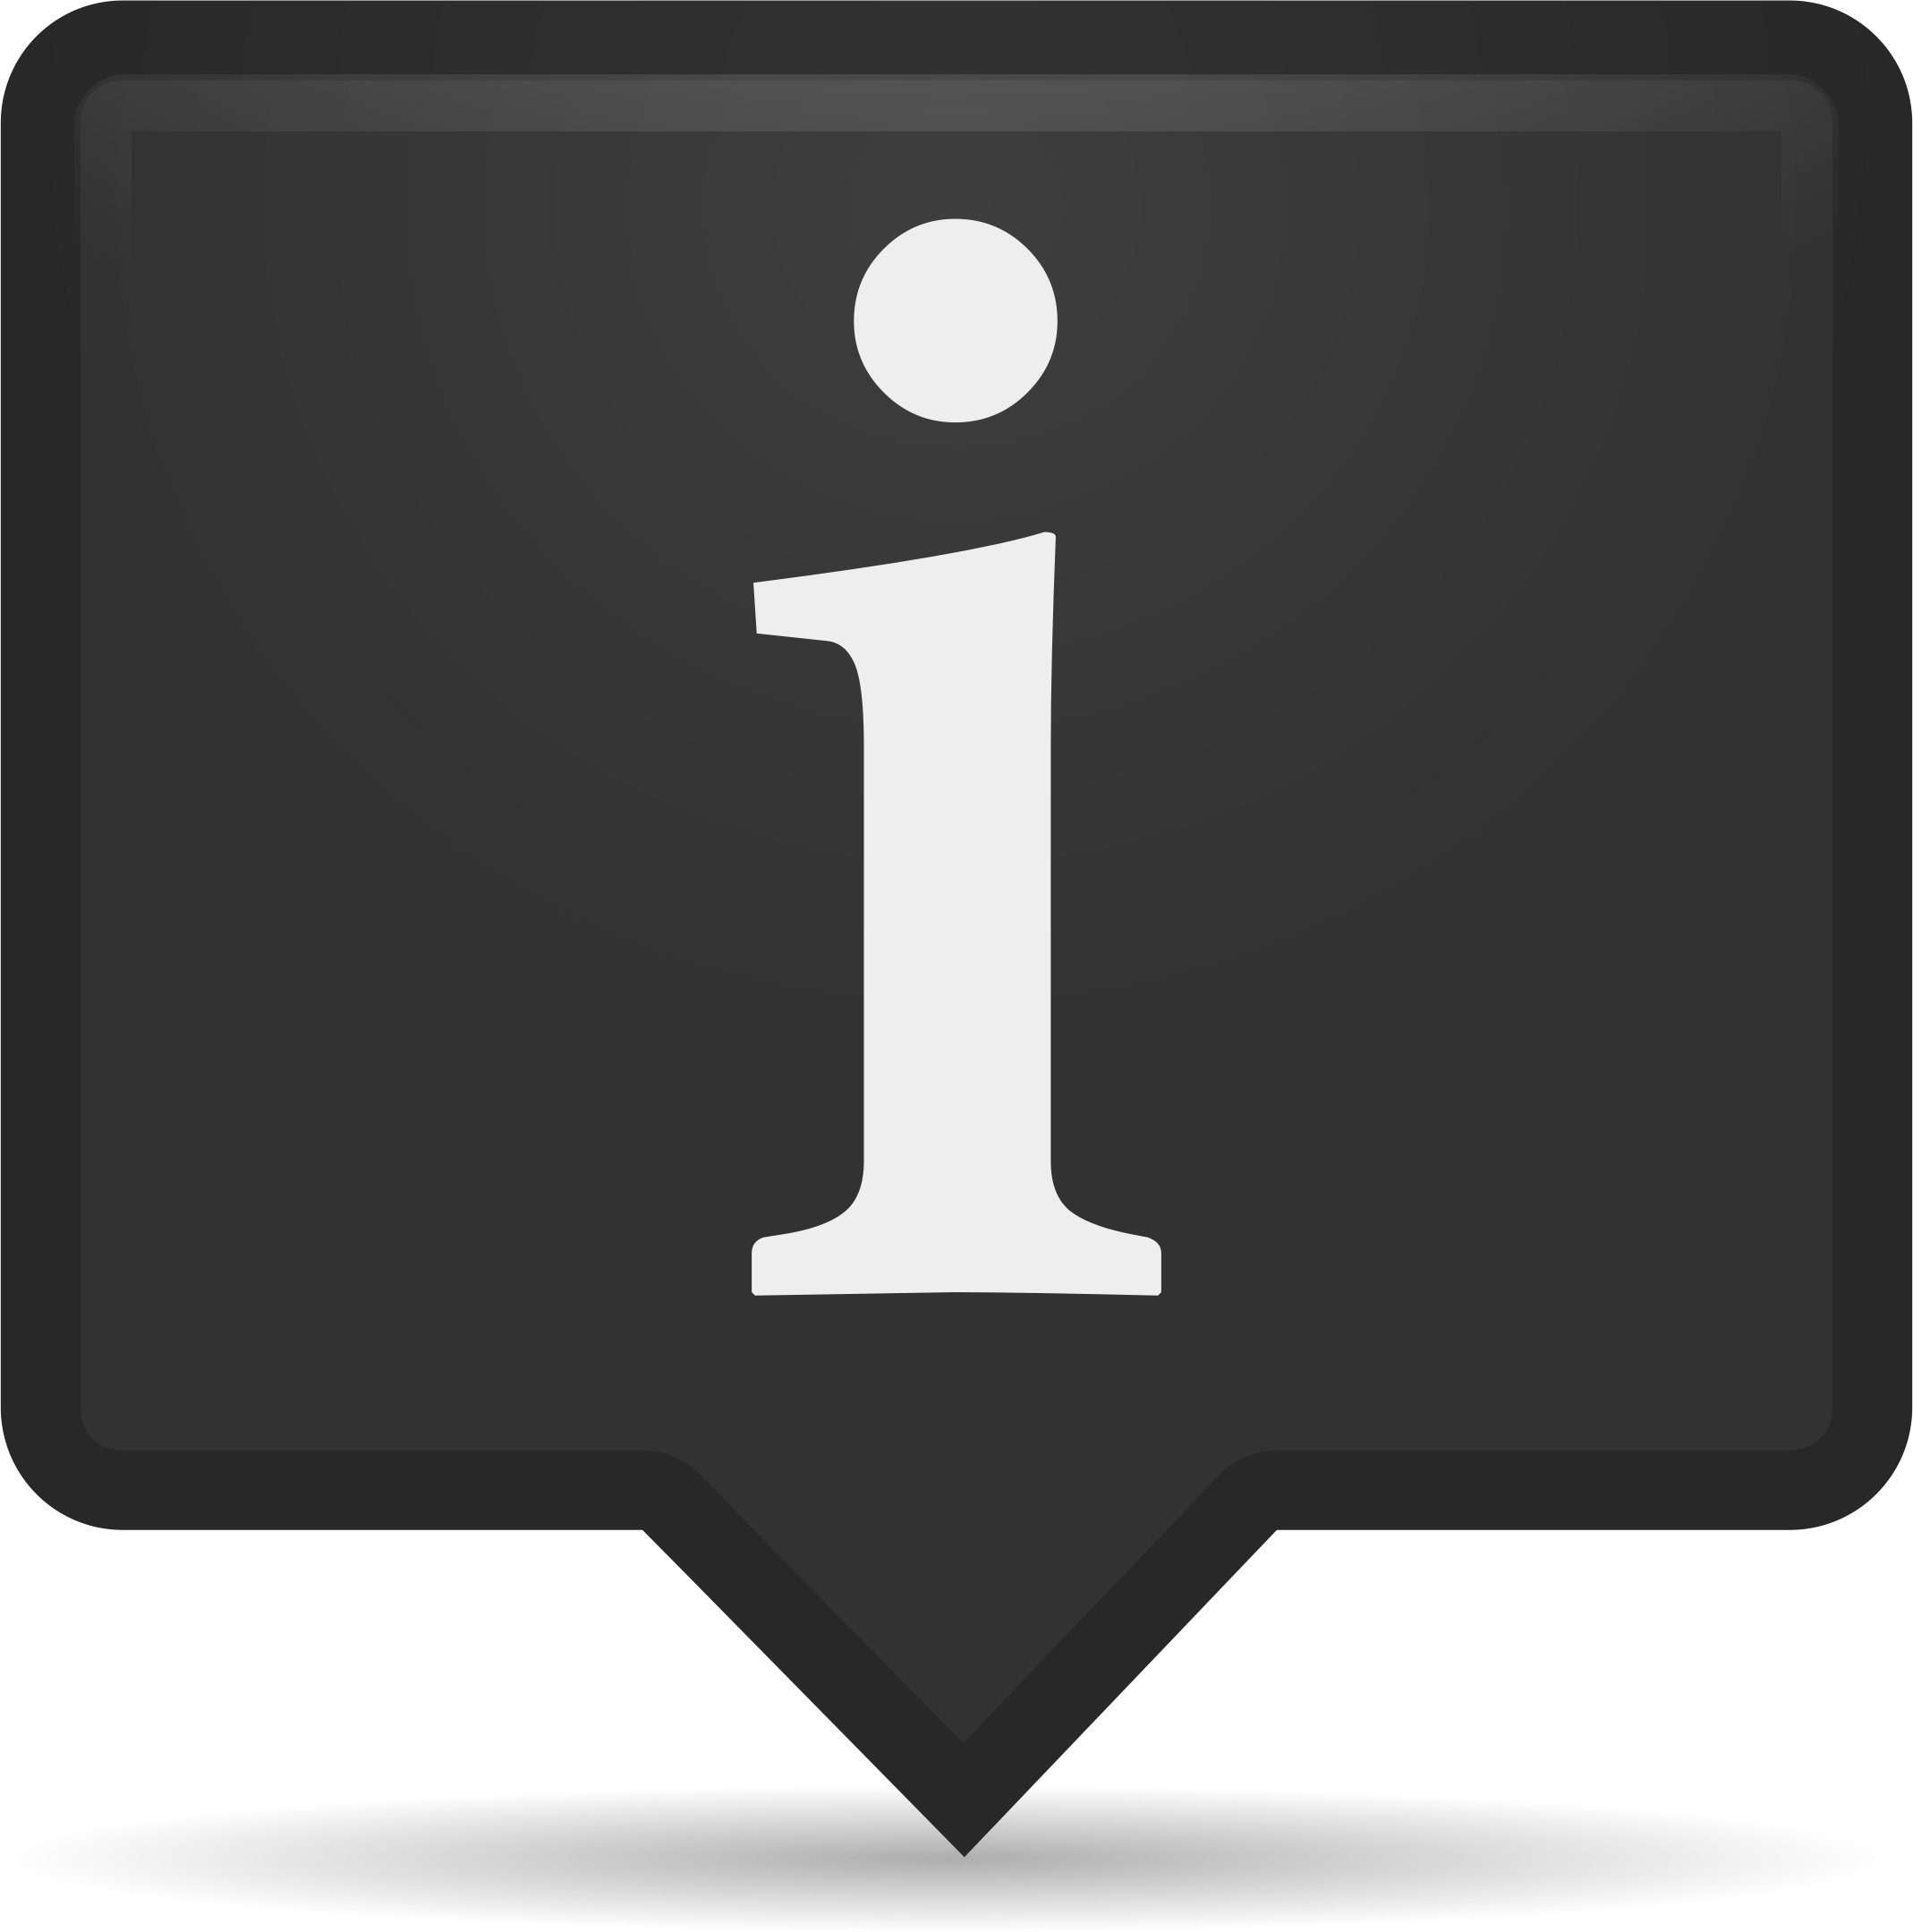 Desktop Notifications Icon by sixsixfive